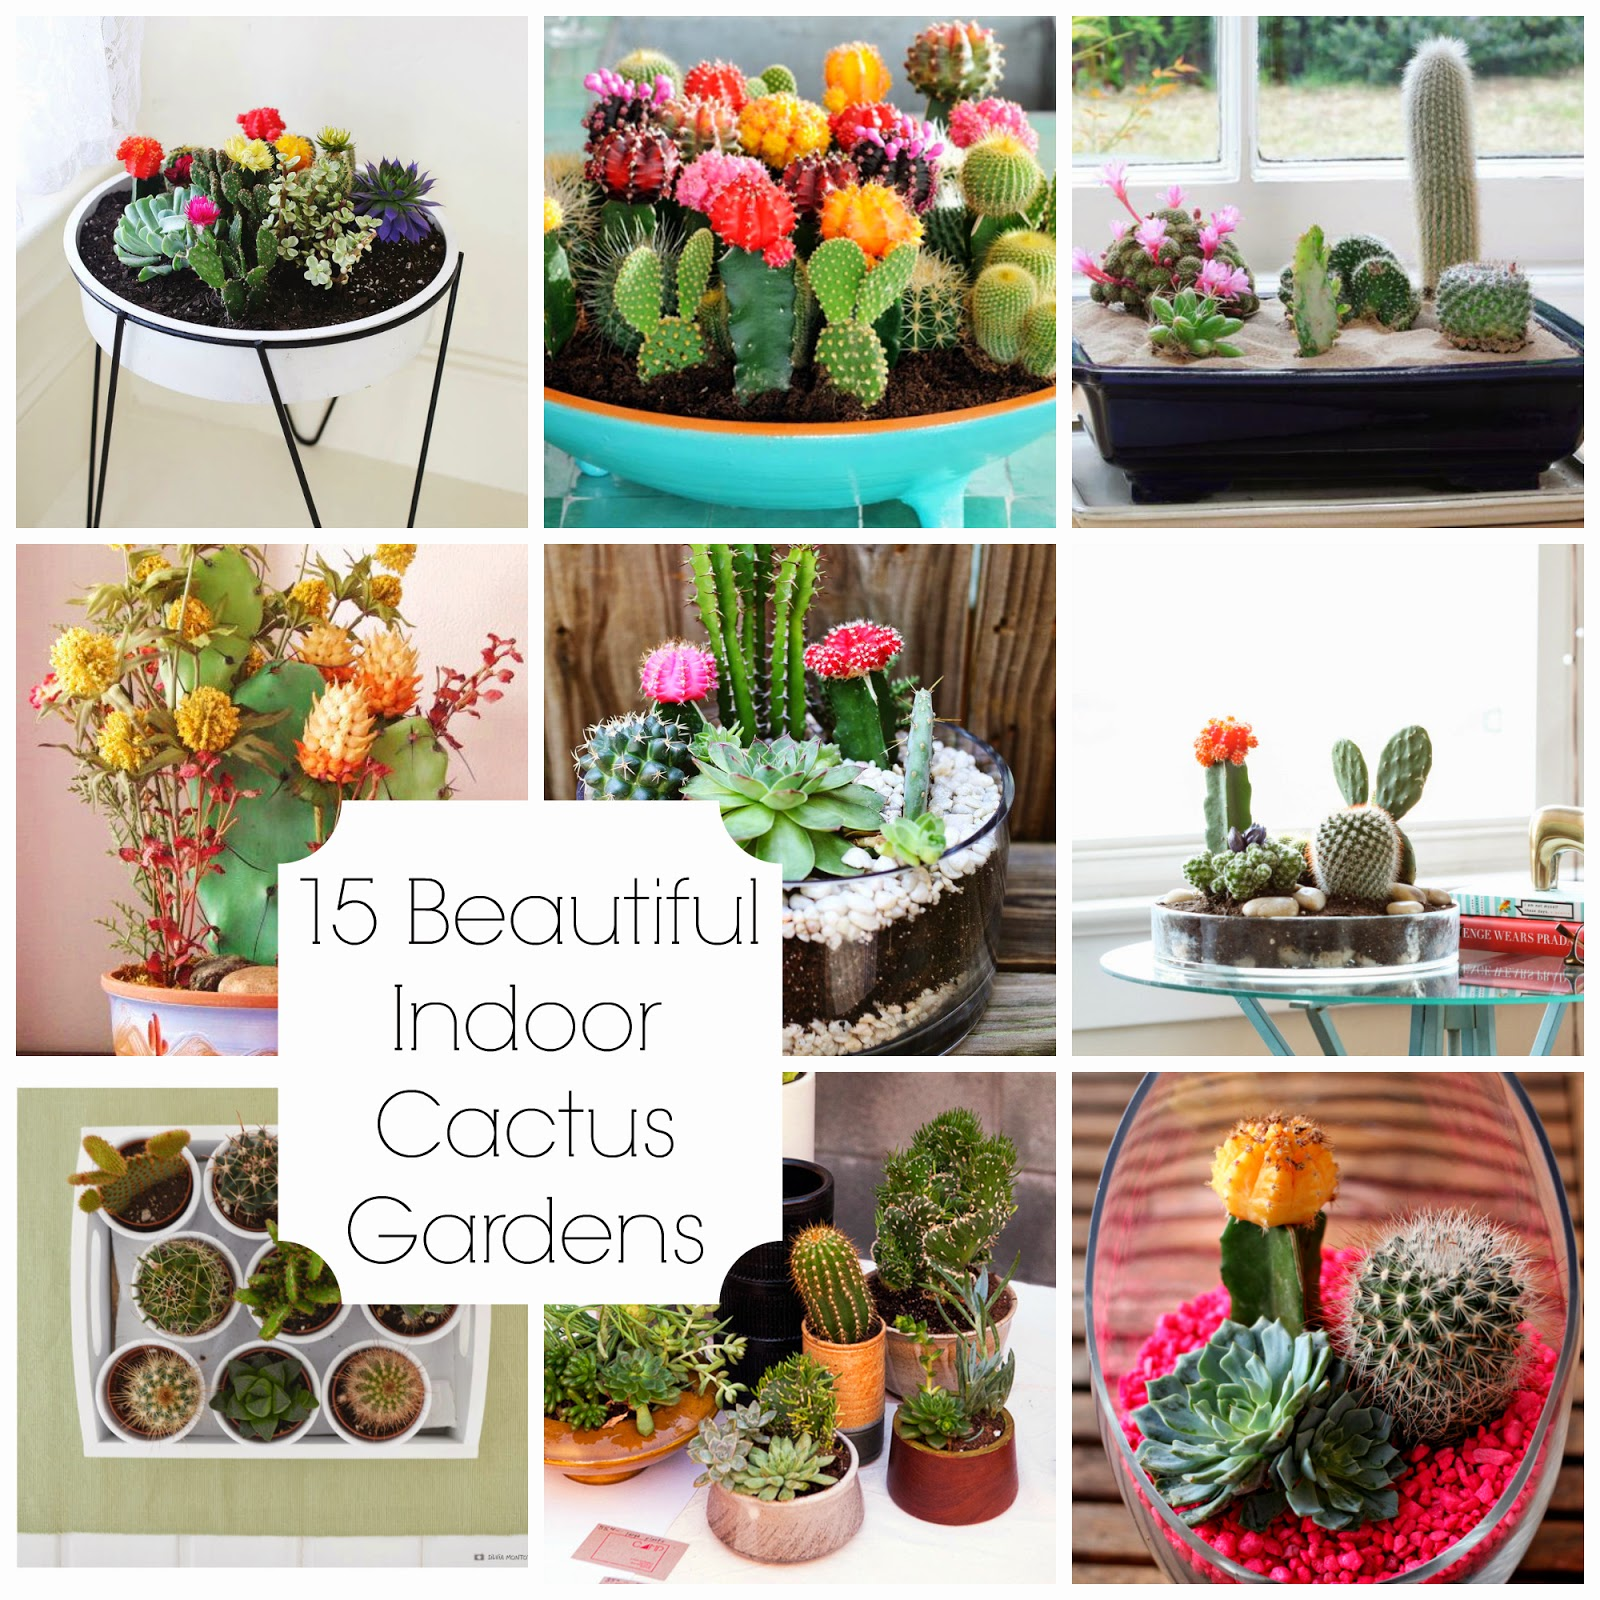 The Koenigs Create 15 Beautiful Indoor Cactus Gardens